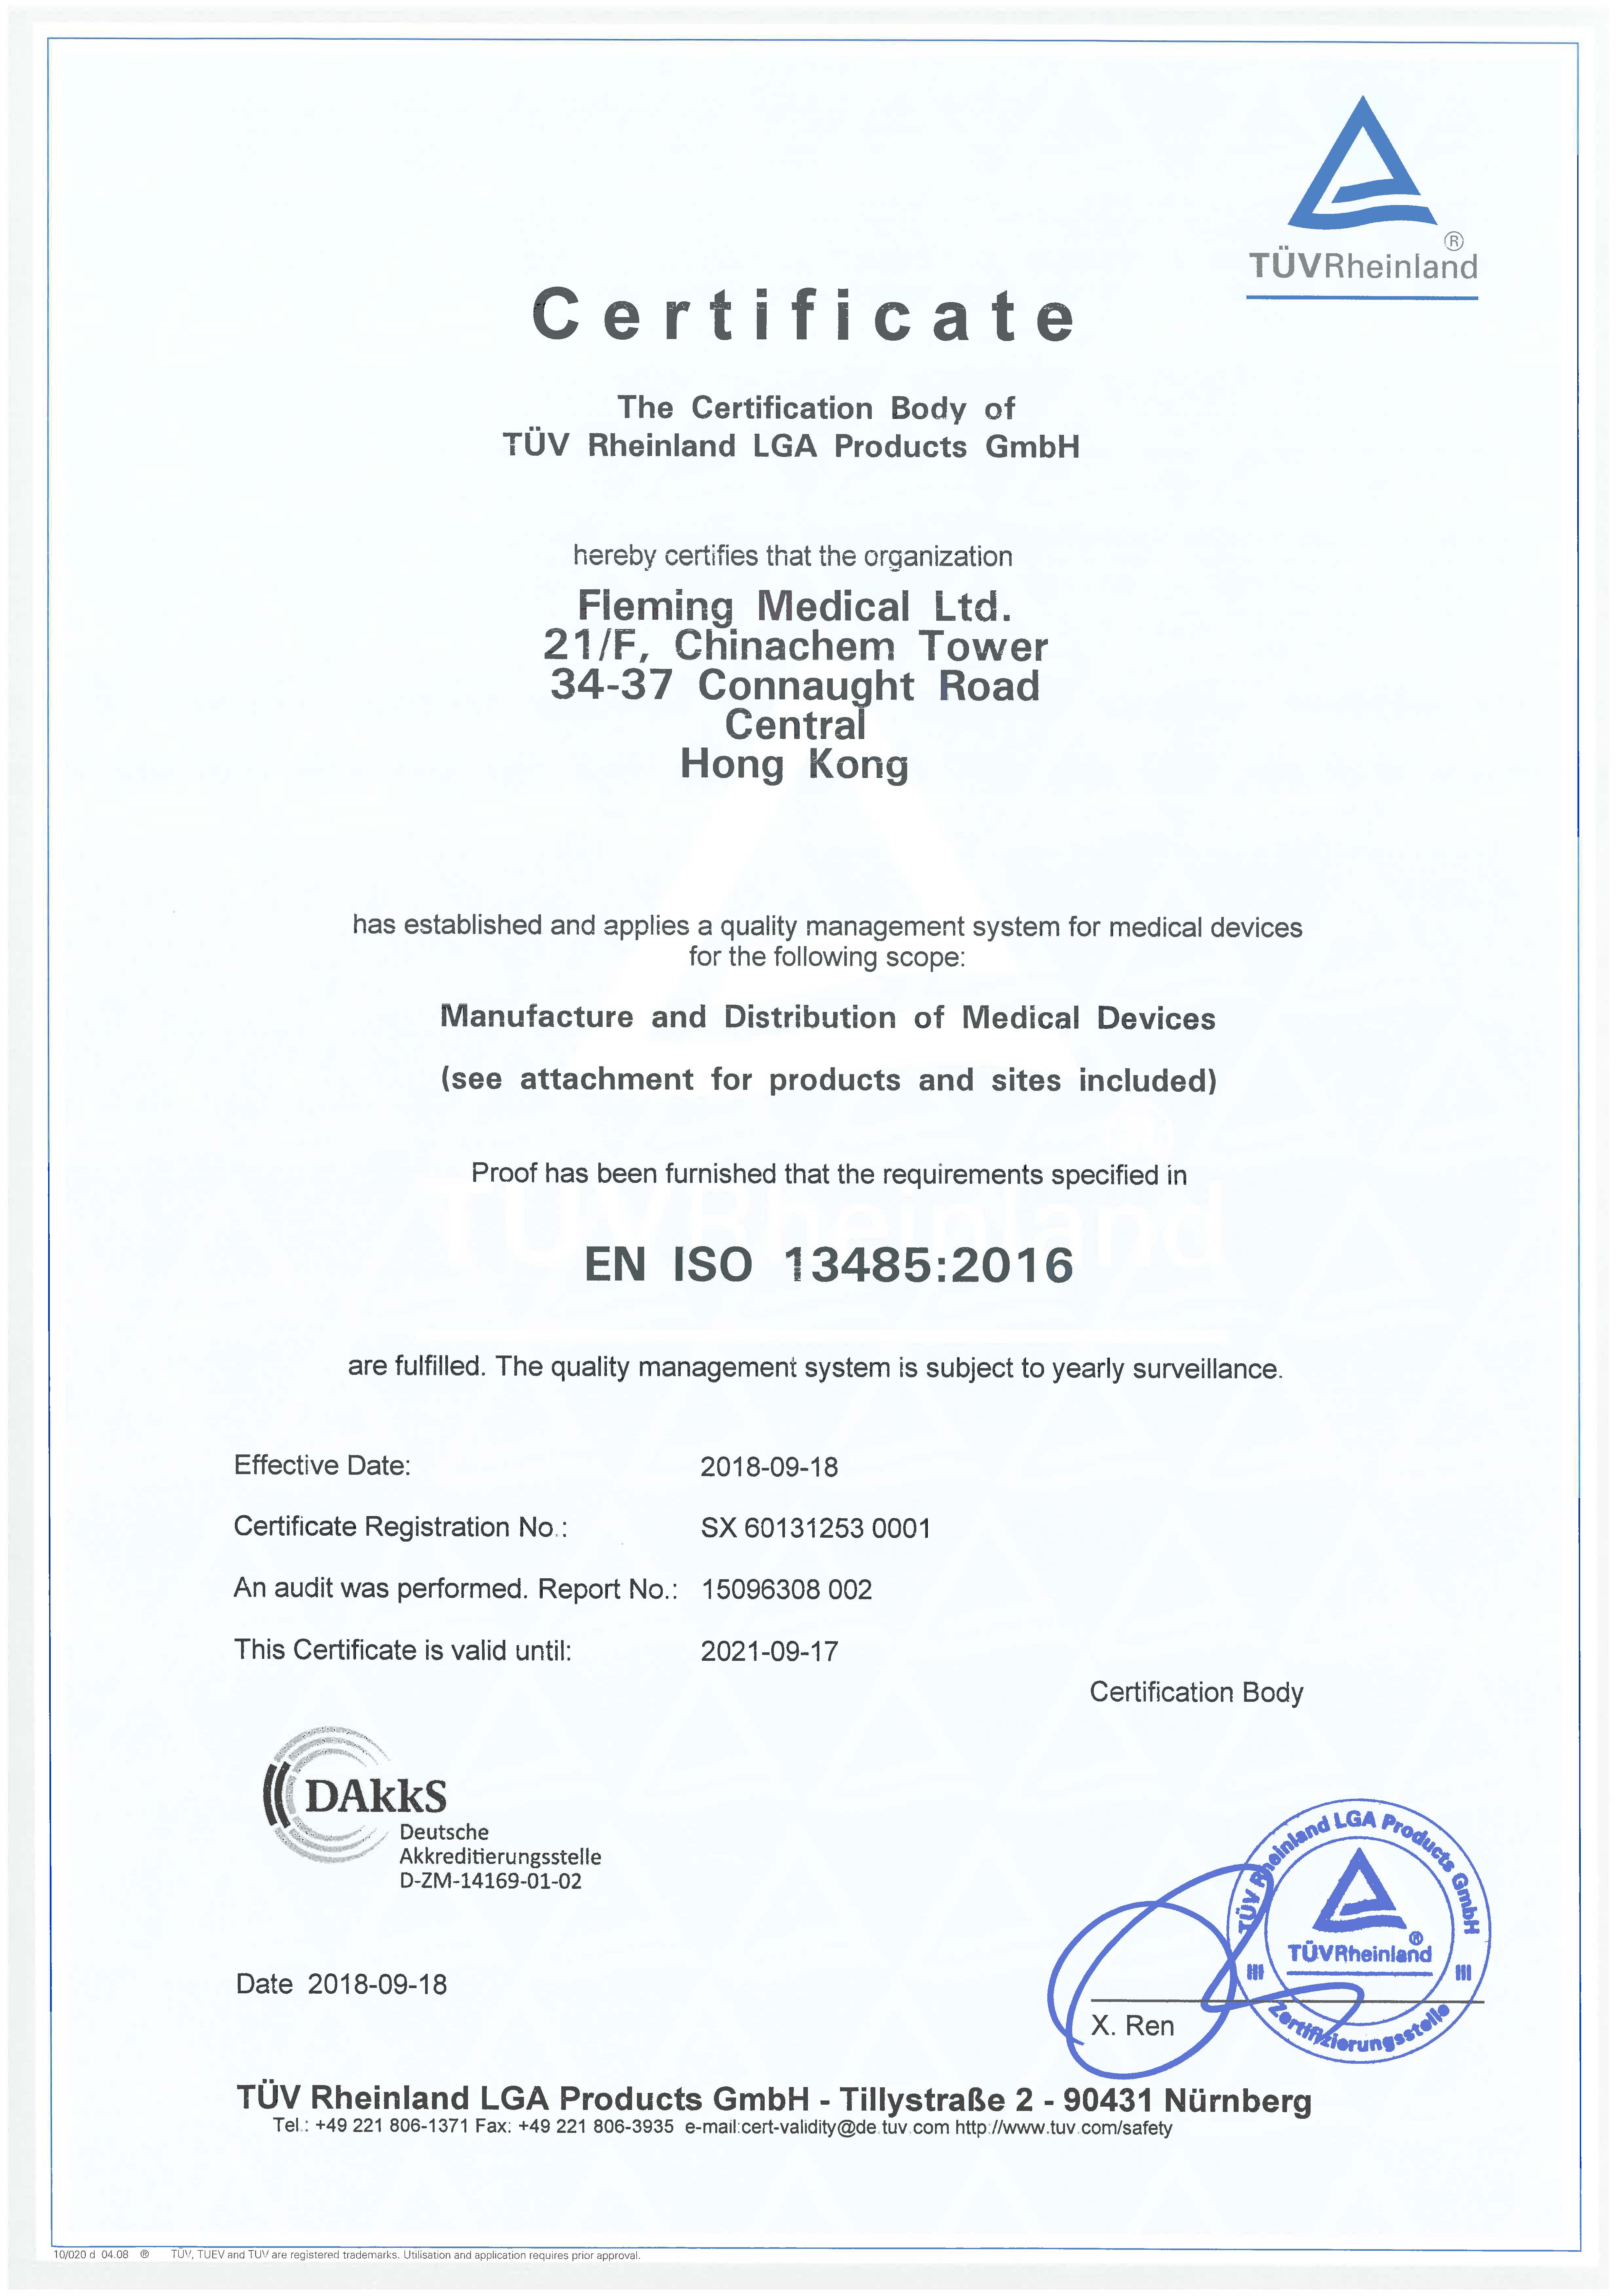 TUV ISO 13485-2016 Certification - Fleming Medical